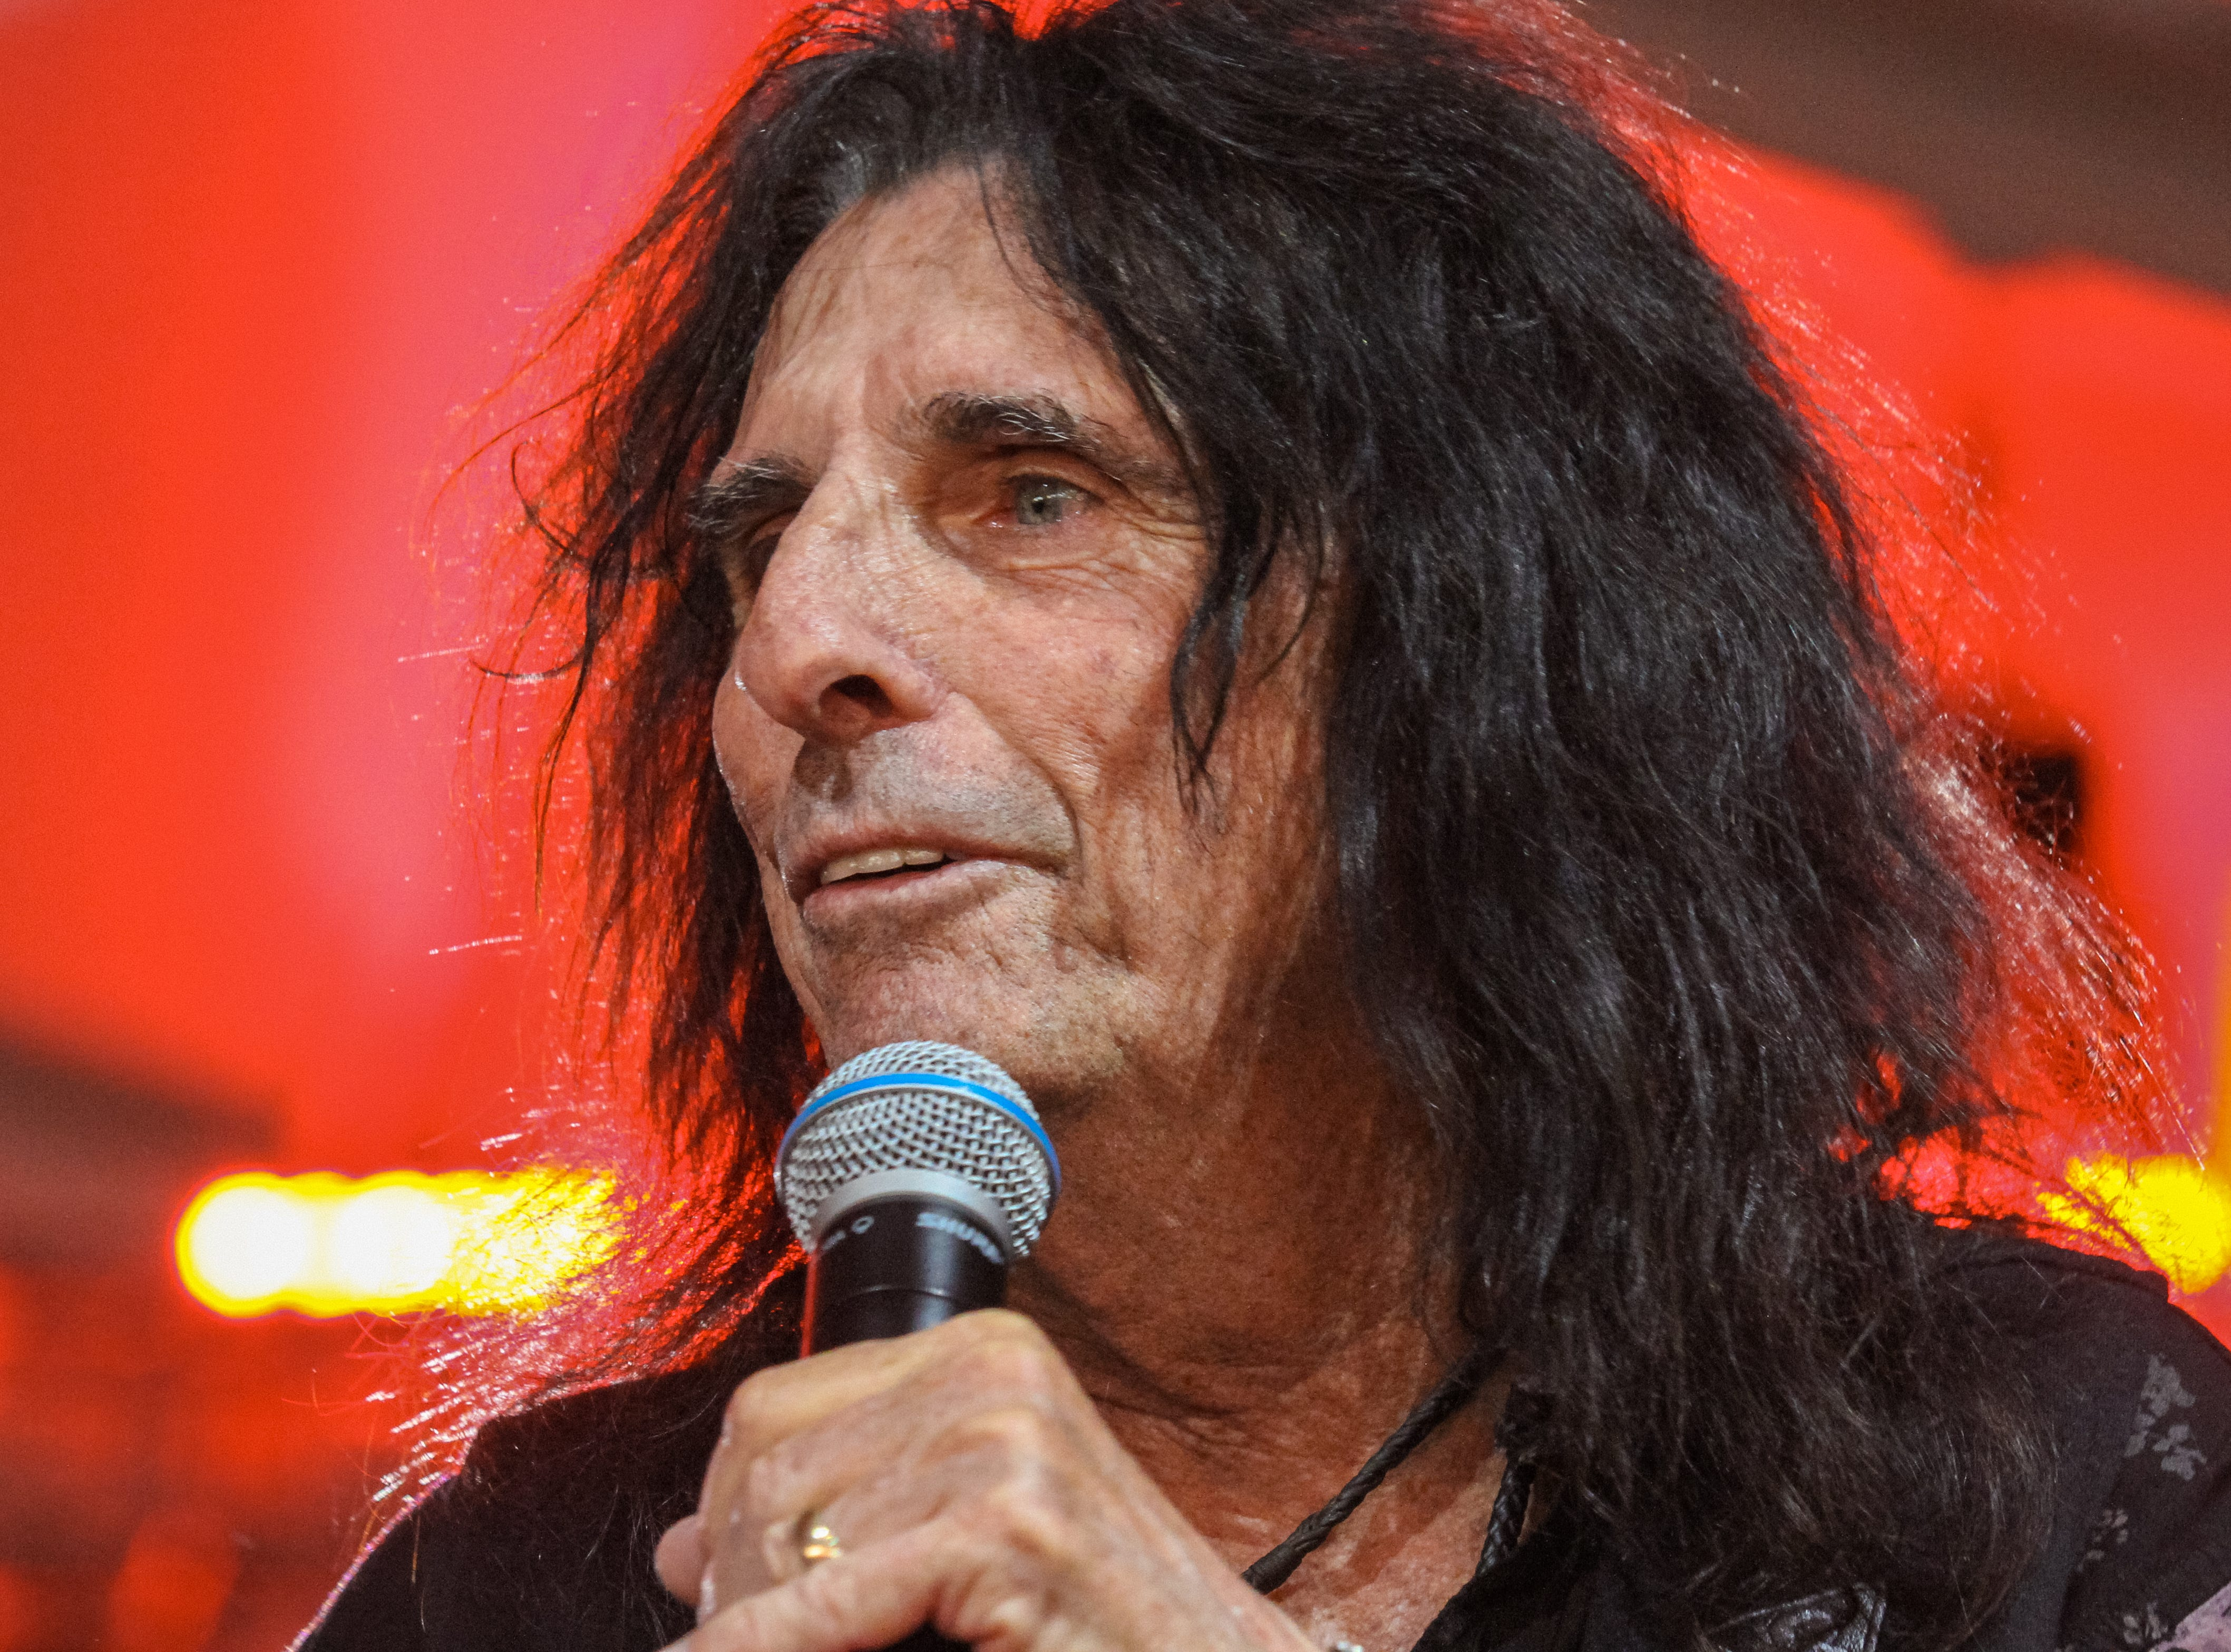 Alice Cooper speaks at Alice Cooper's Rock & Roll Fundraising Bash at the Las Sendas Golf Club in Mesa on April 27, 2019.